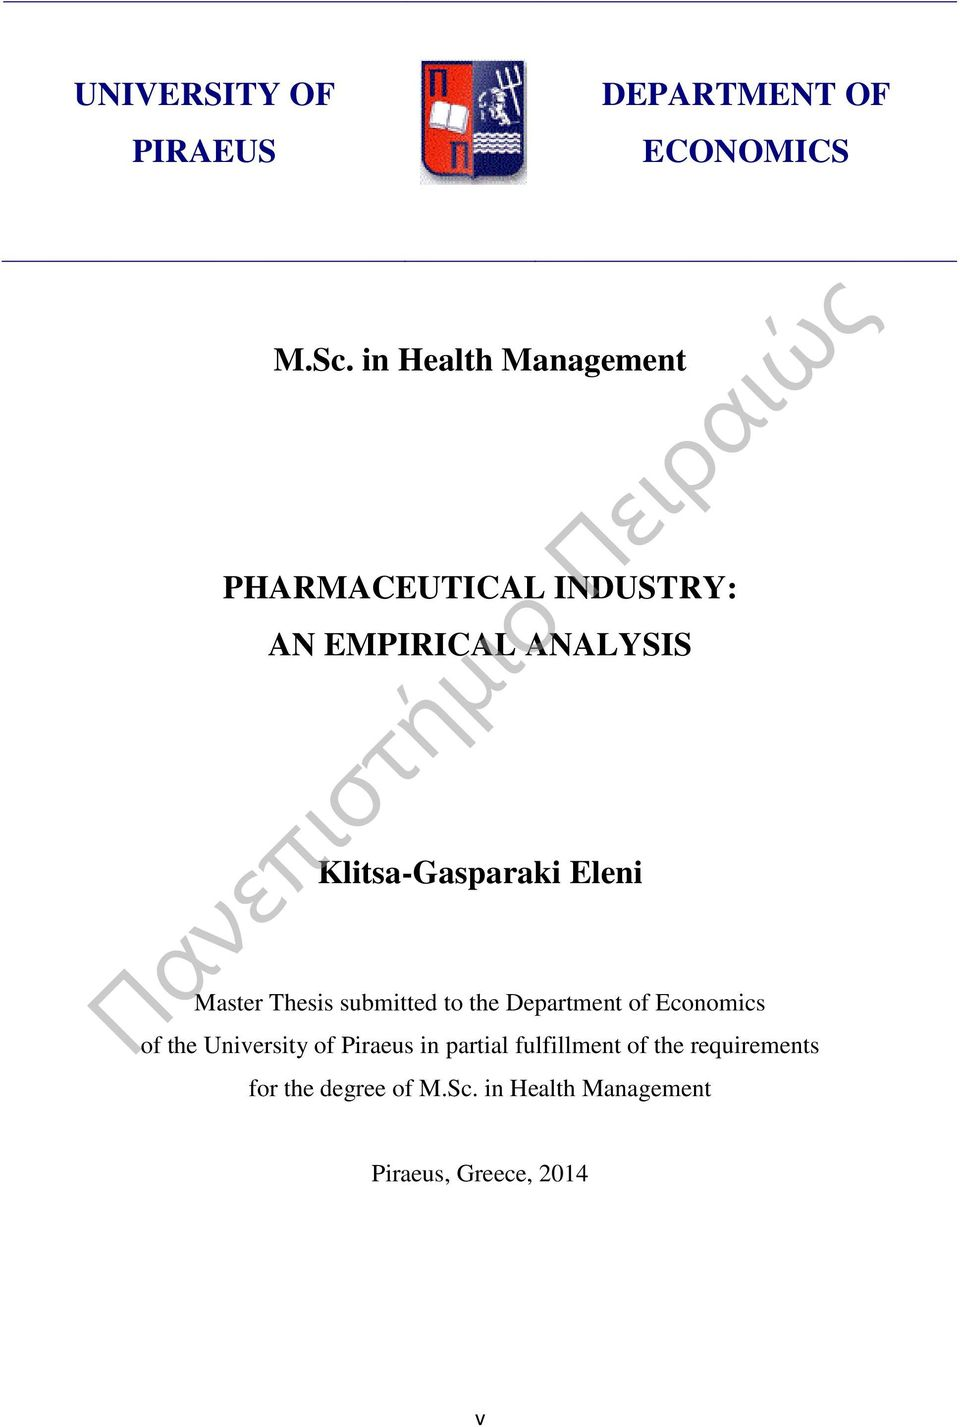 Eleni Master Thesis submitted to the Department of Economics of the University of